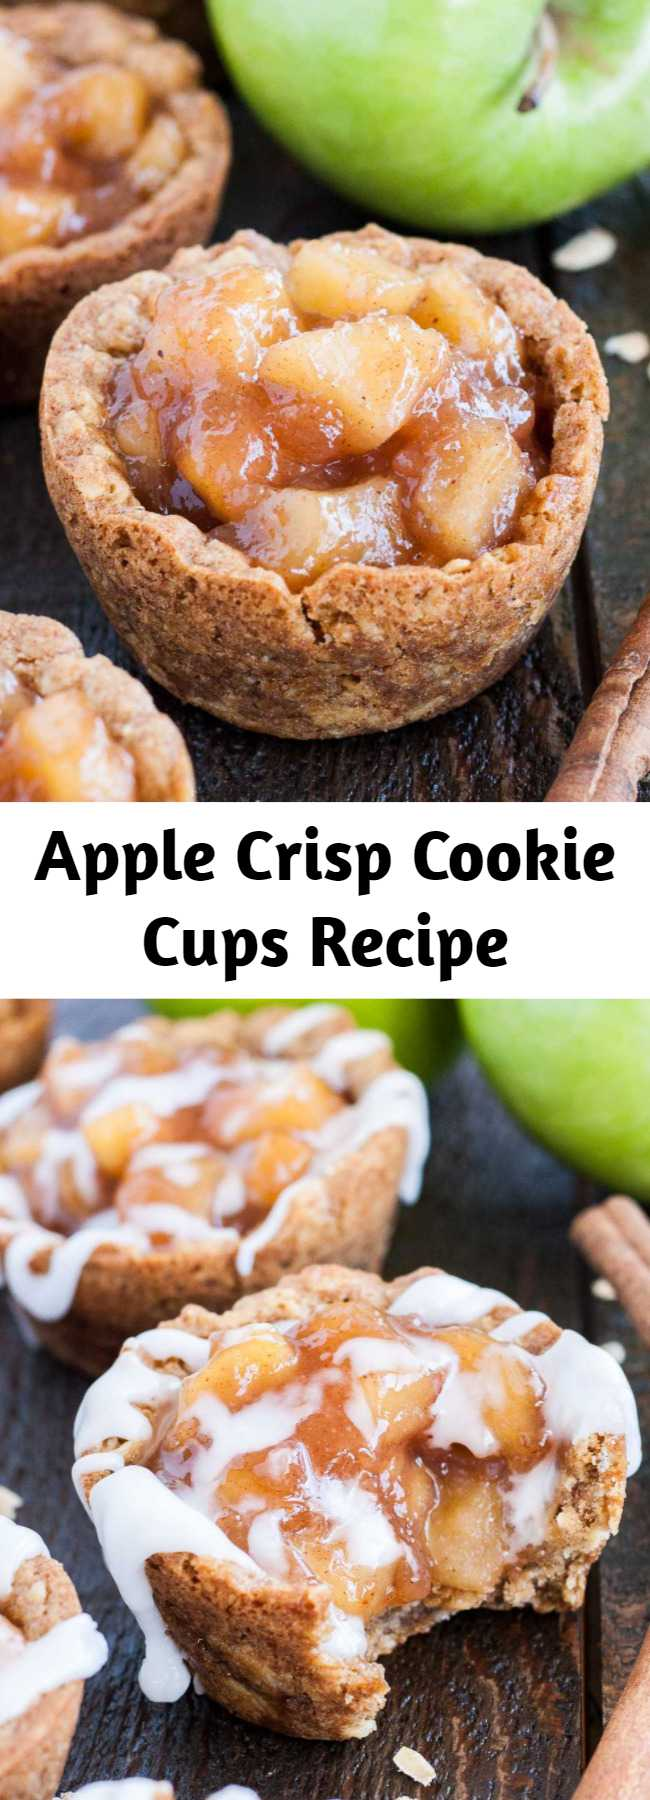 Apple Crisp Cookie Cups Recipe - These Apple Crisp Cookie Cups combine classic oatmeal cookies with homemade apple pie filling for the perfect comfort food.